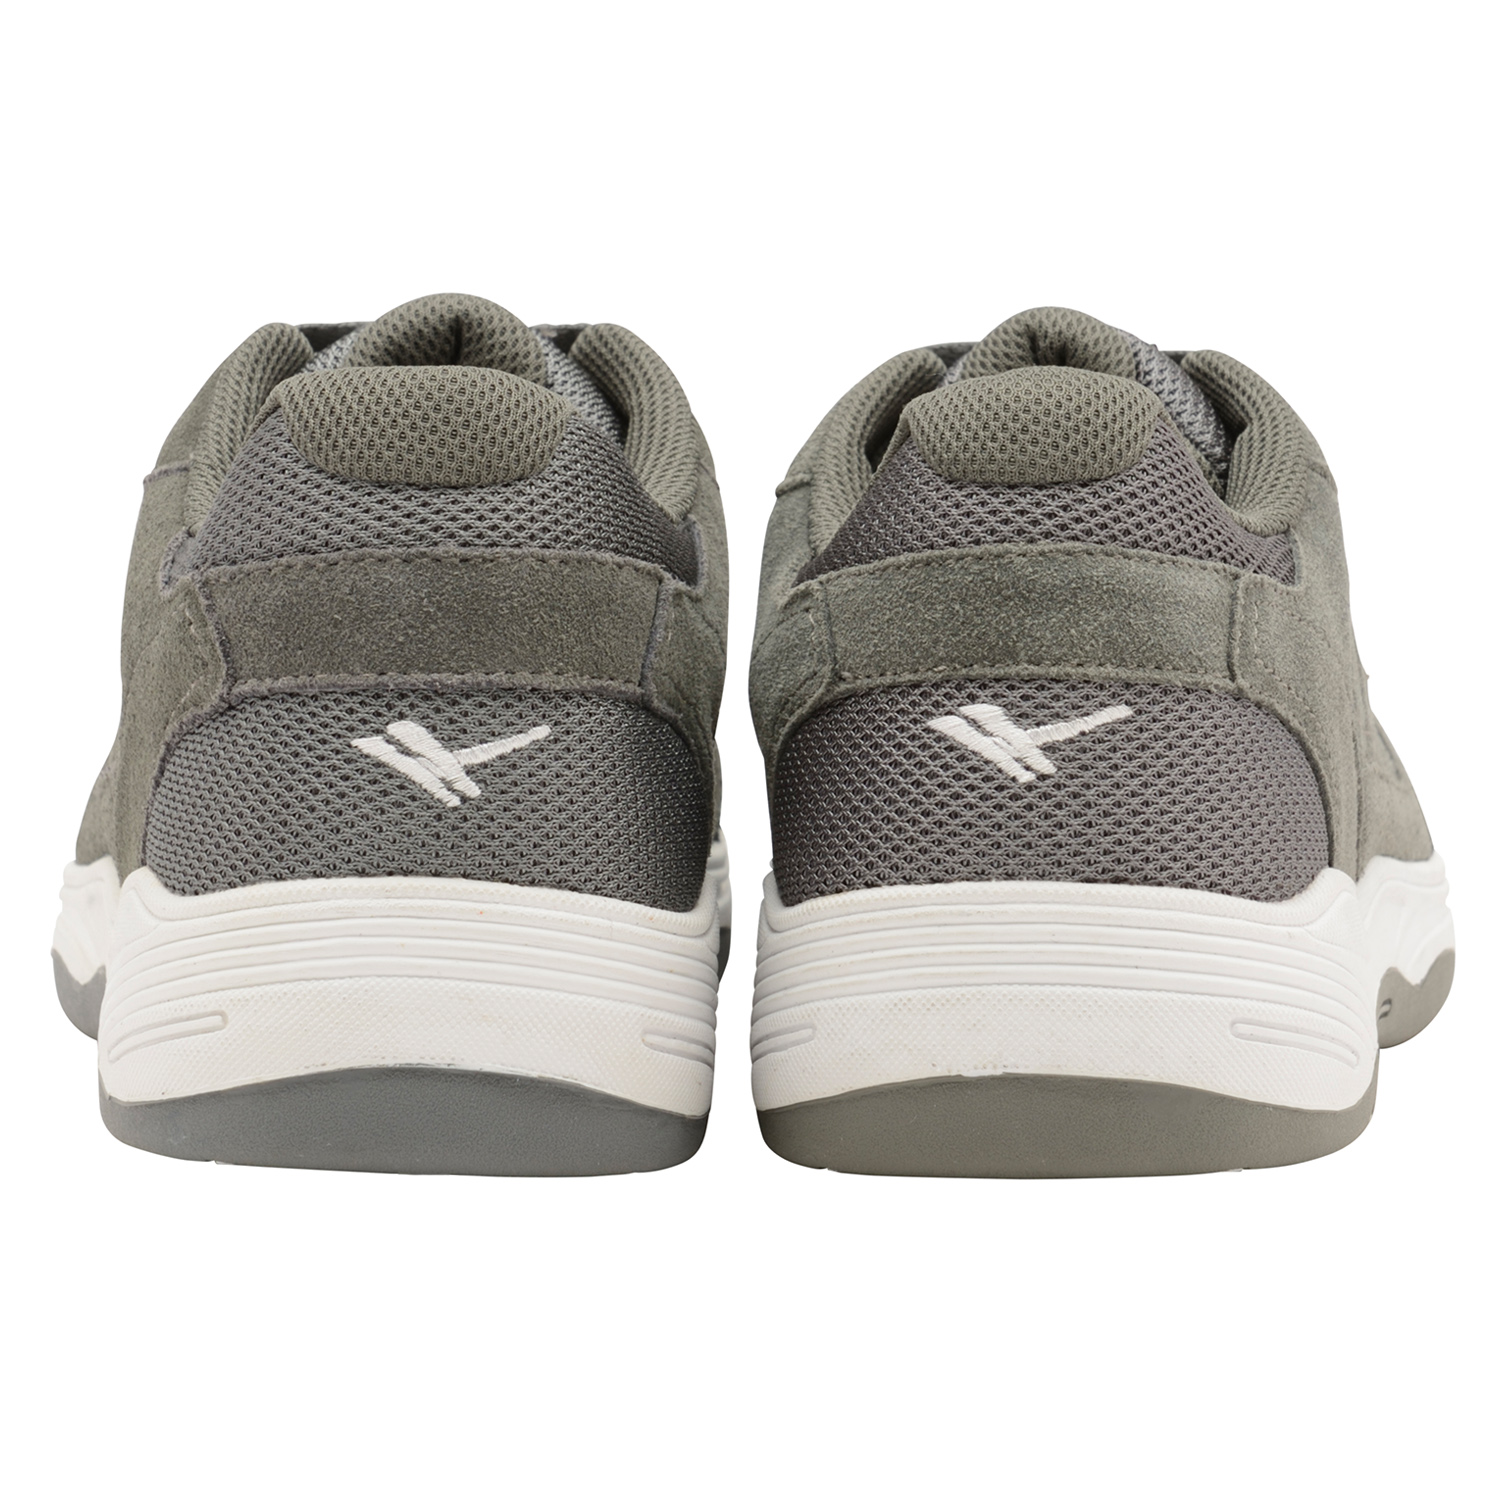 thumbnail 9 - Mens Gola Belmont Wide EE Fit Suede Sports Shoes Lace Up Non-Mark Sole Trainers